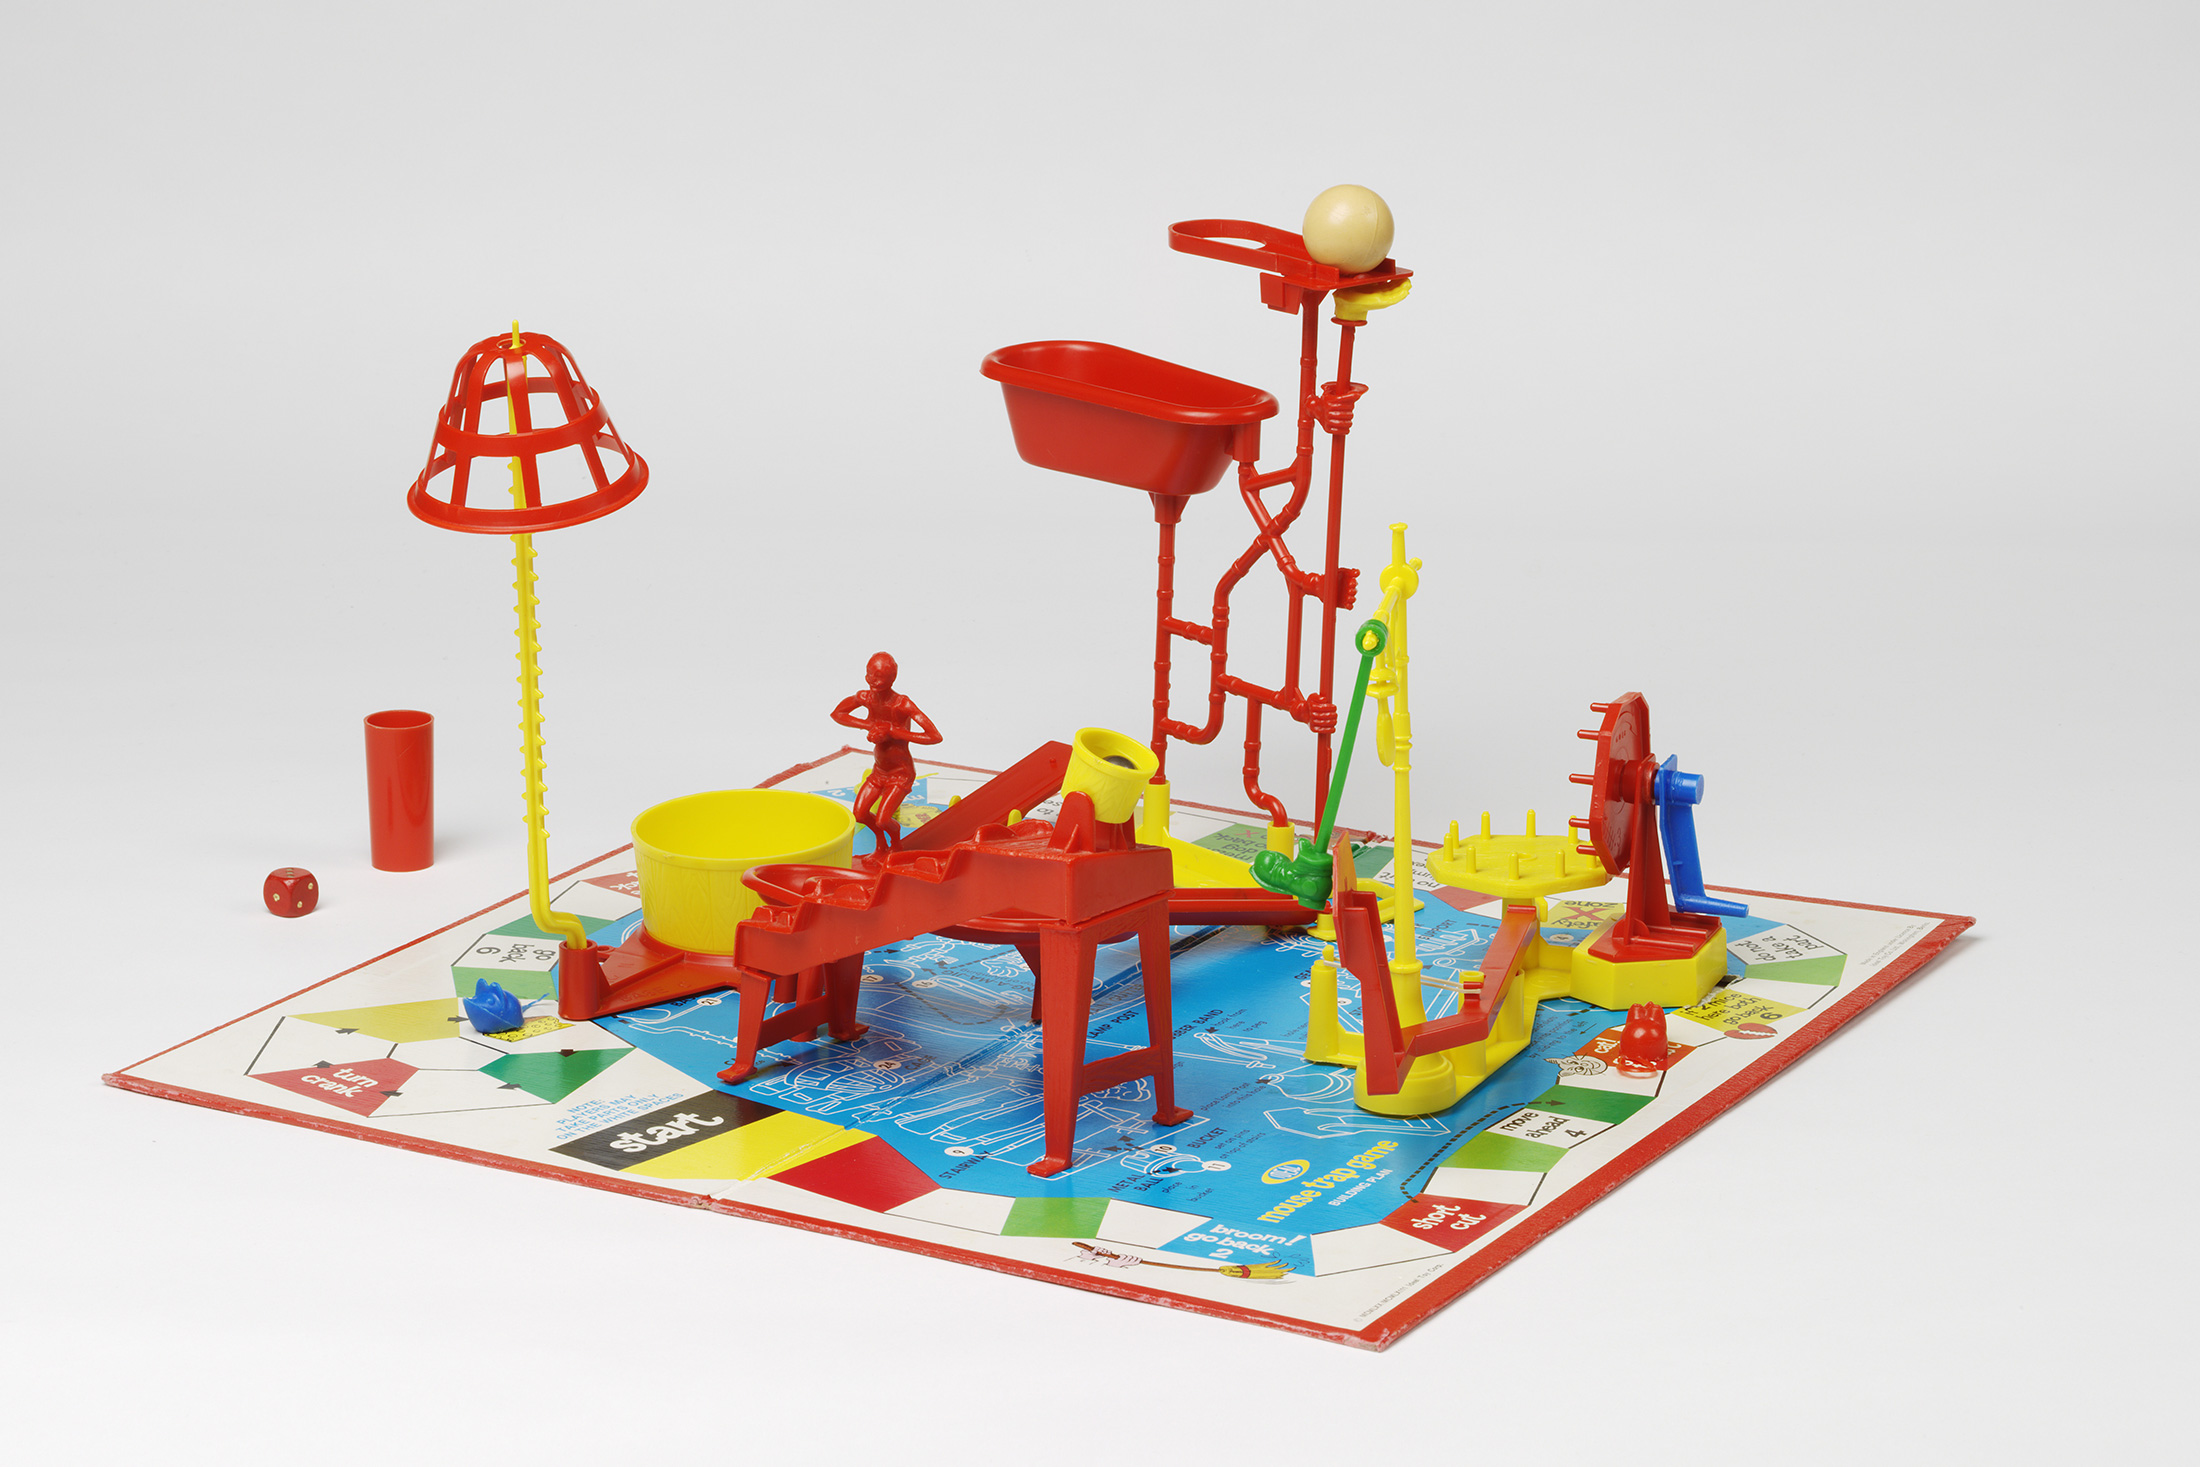 """The set for the game Mousetrap manufactured in the 1990s by American company Ideal Toy Co. (Photo: Courtesy of Amy King and the Virginia and Albert Museum, London)"""